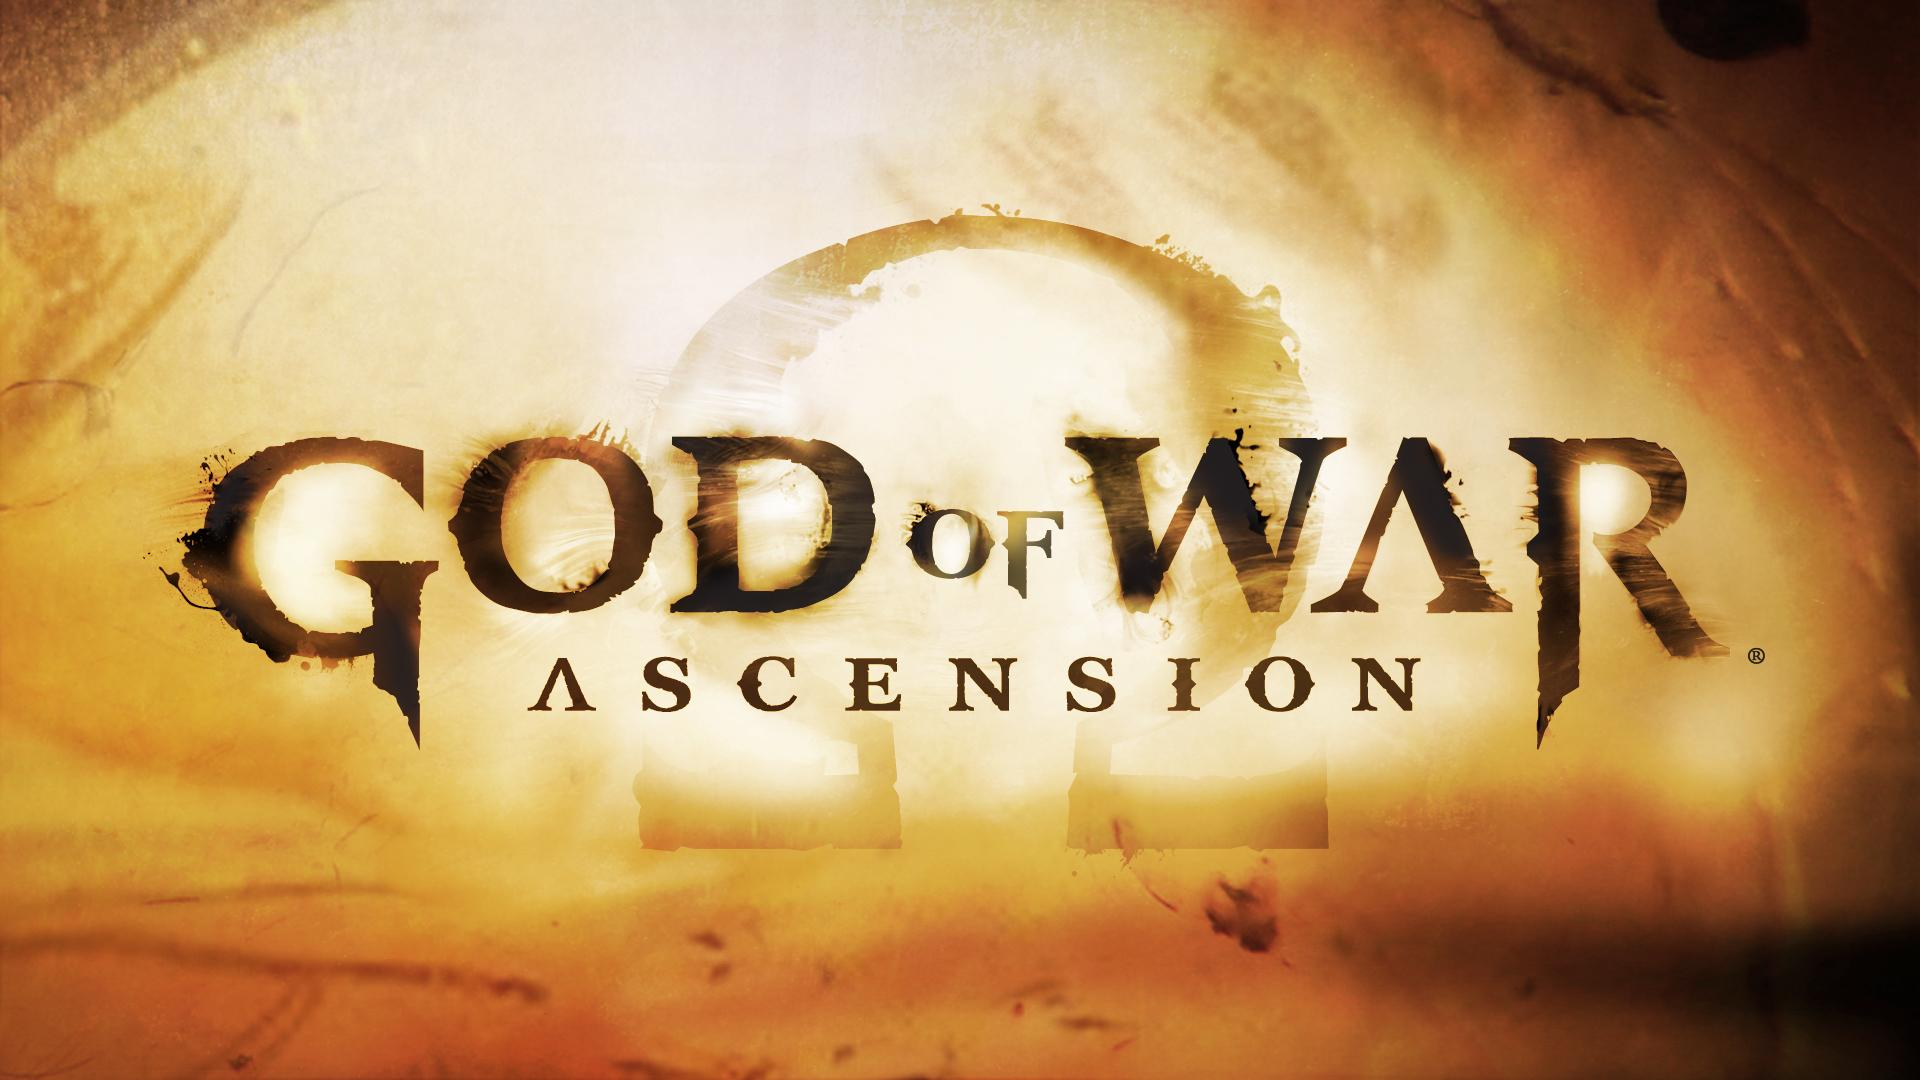 God of War: Ascension Preview: Action Gameplay Never Felt So Good